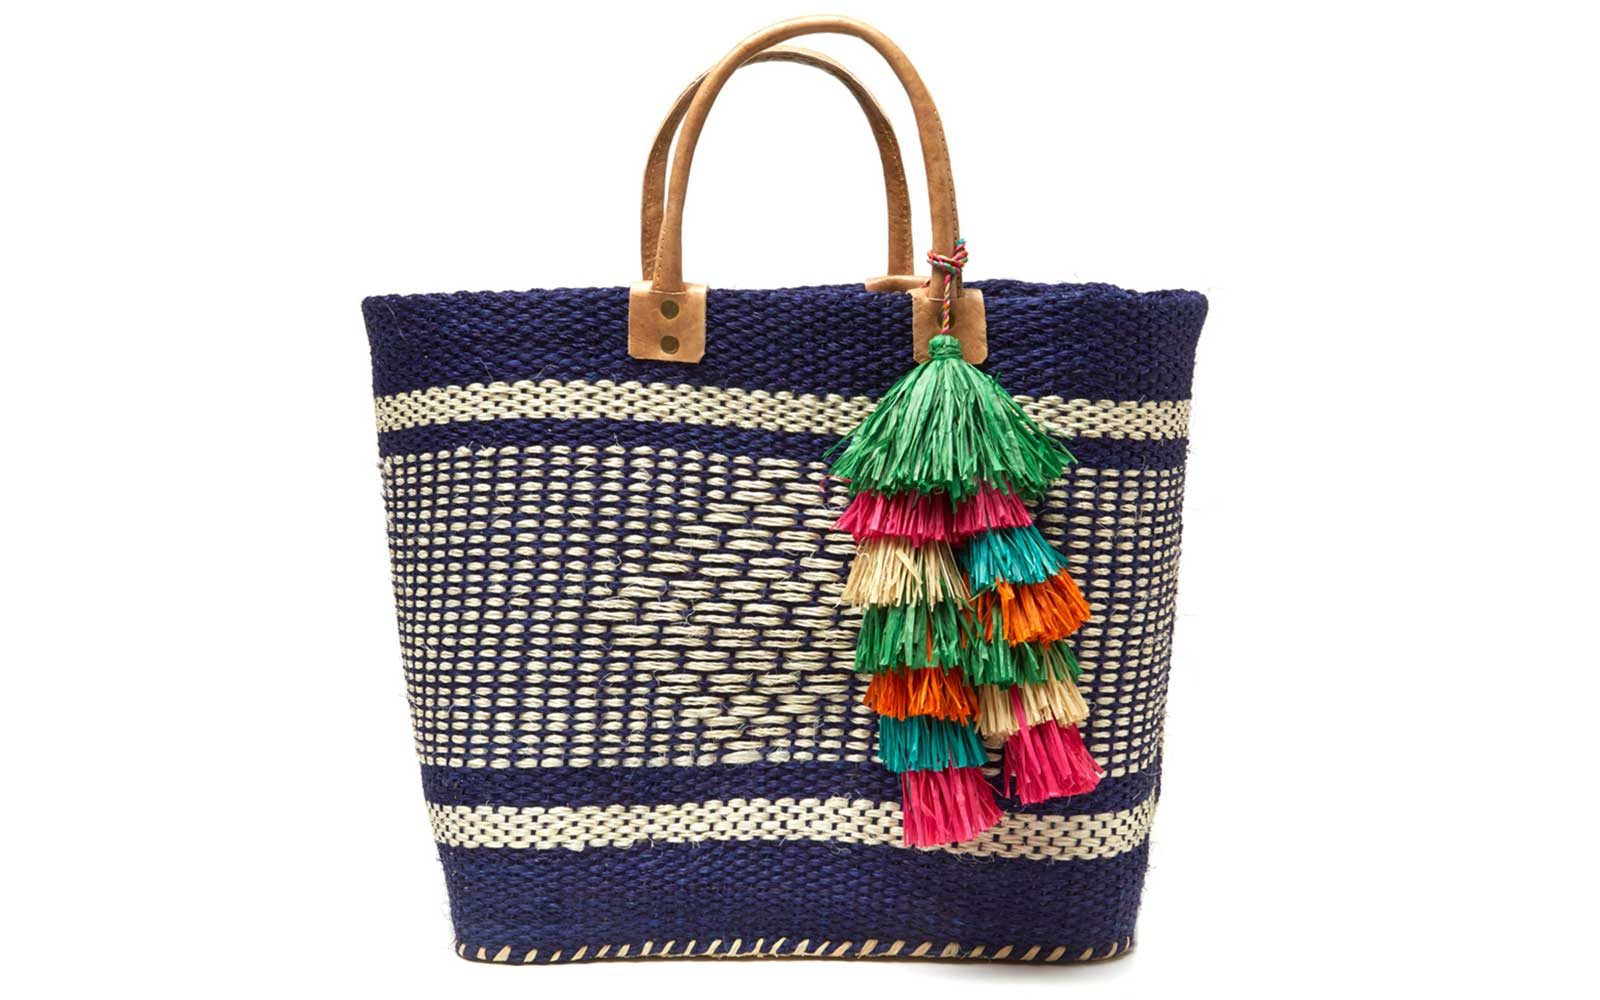 f892e41d4a18 Stylish and Sturdy Beach Bags You Can Use As a Carry-on | Travel + ...